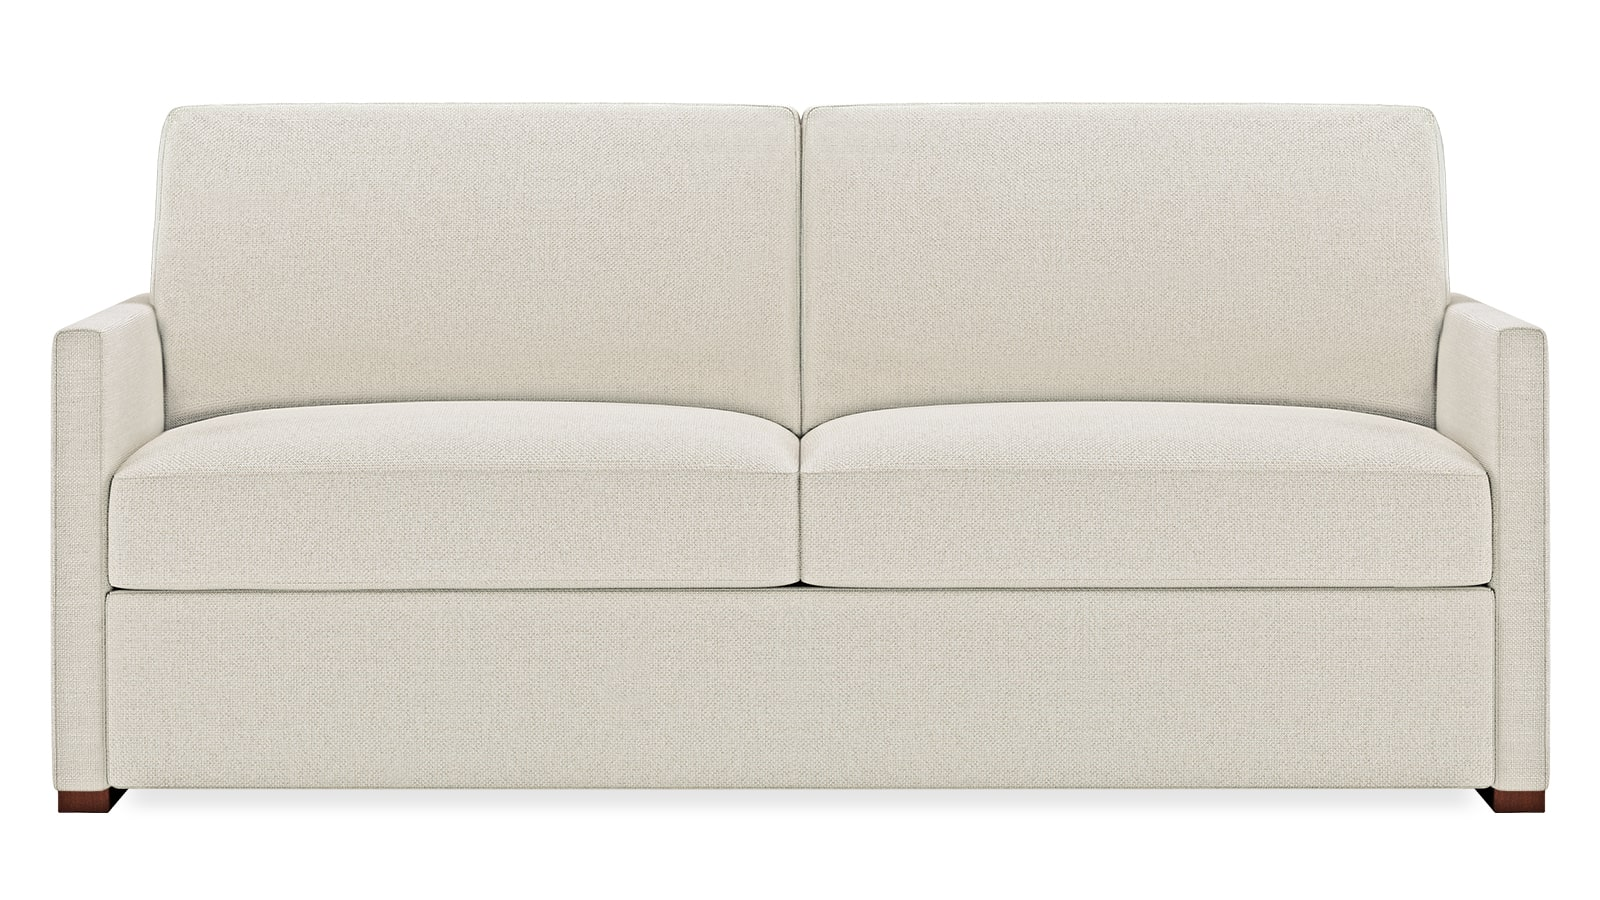 american leather pearson sleeper sofa